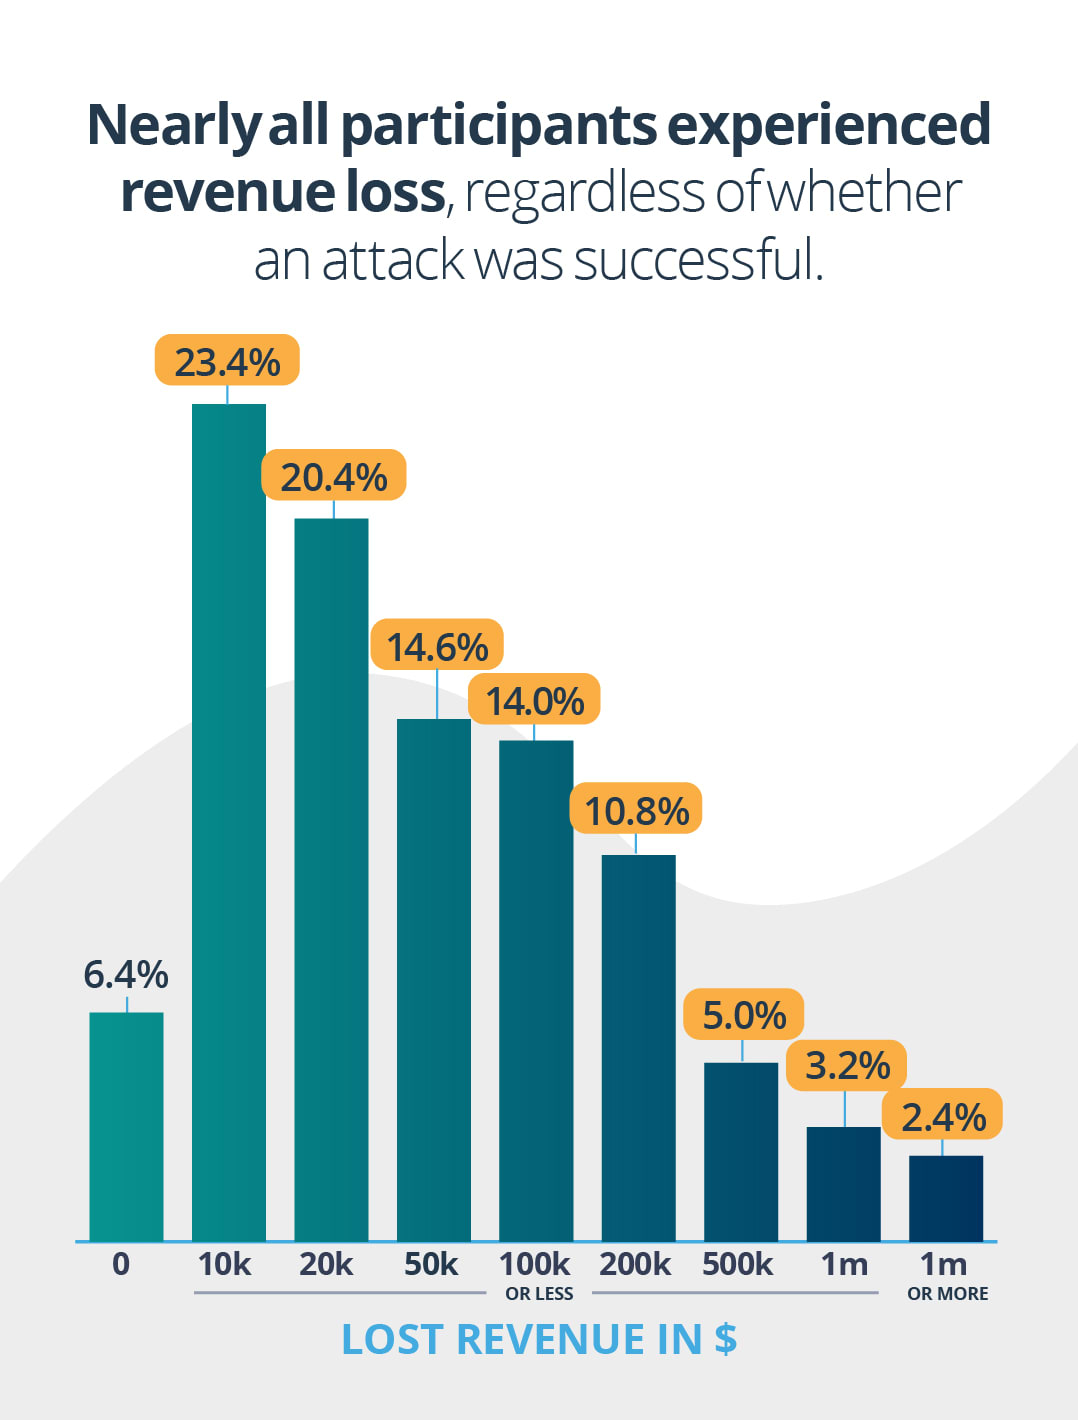 Nearly all participants experienced revenue loss regardless of whether an attack was successful